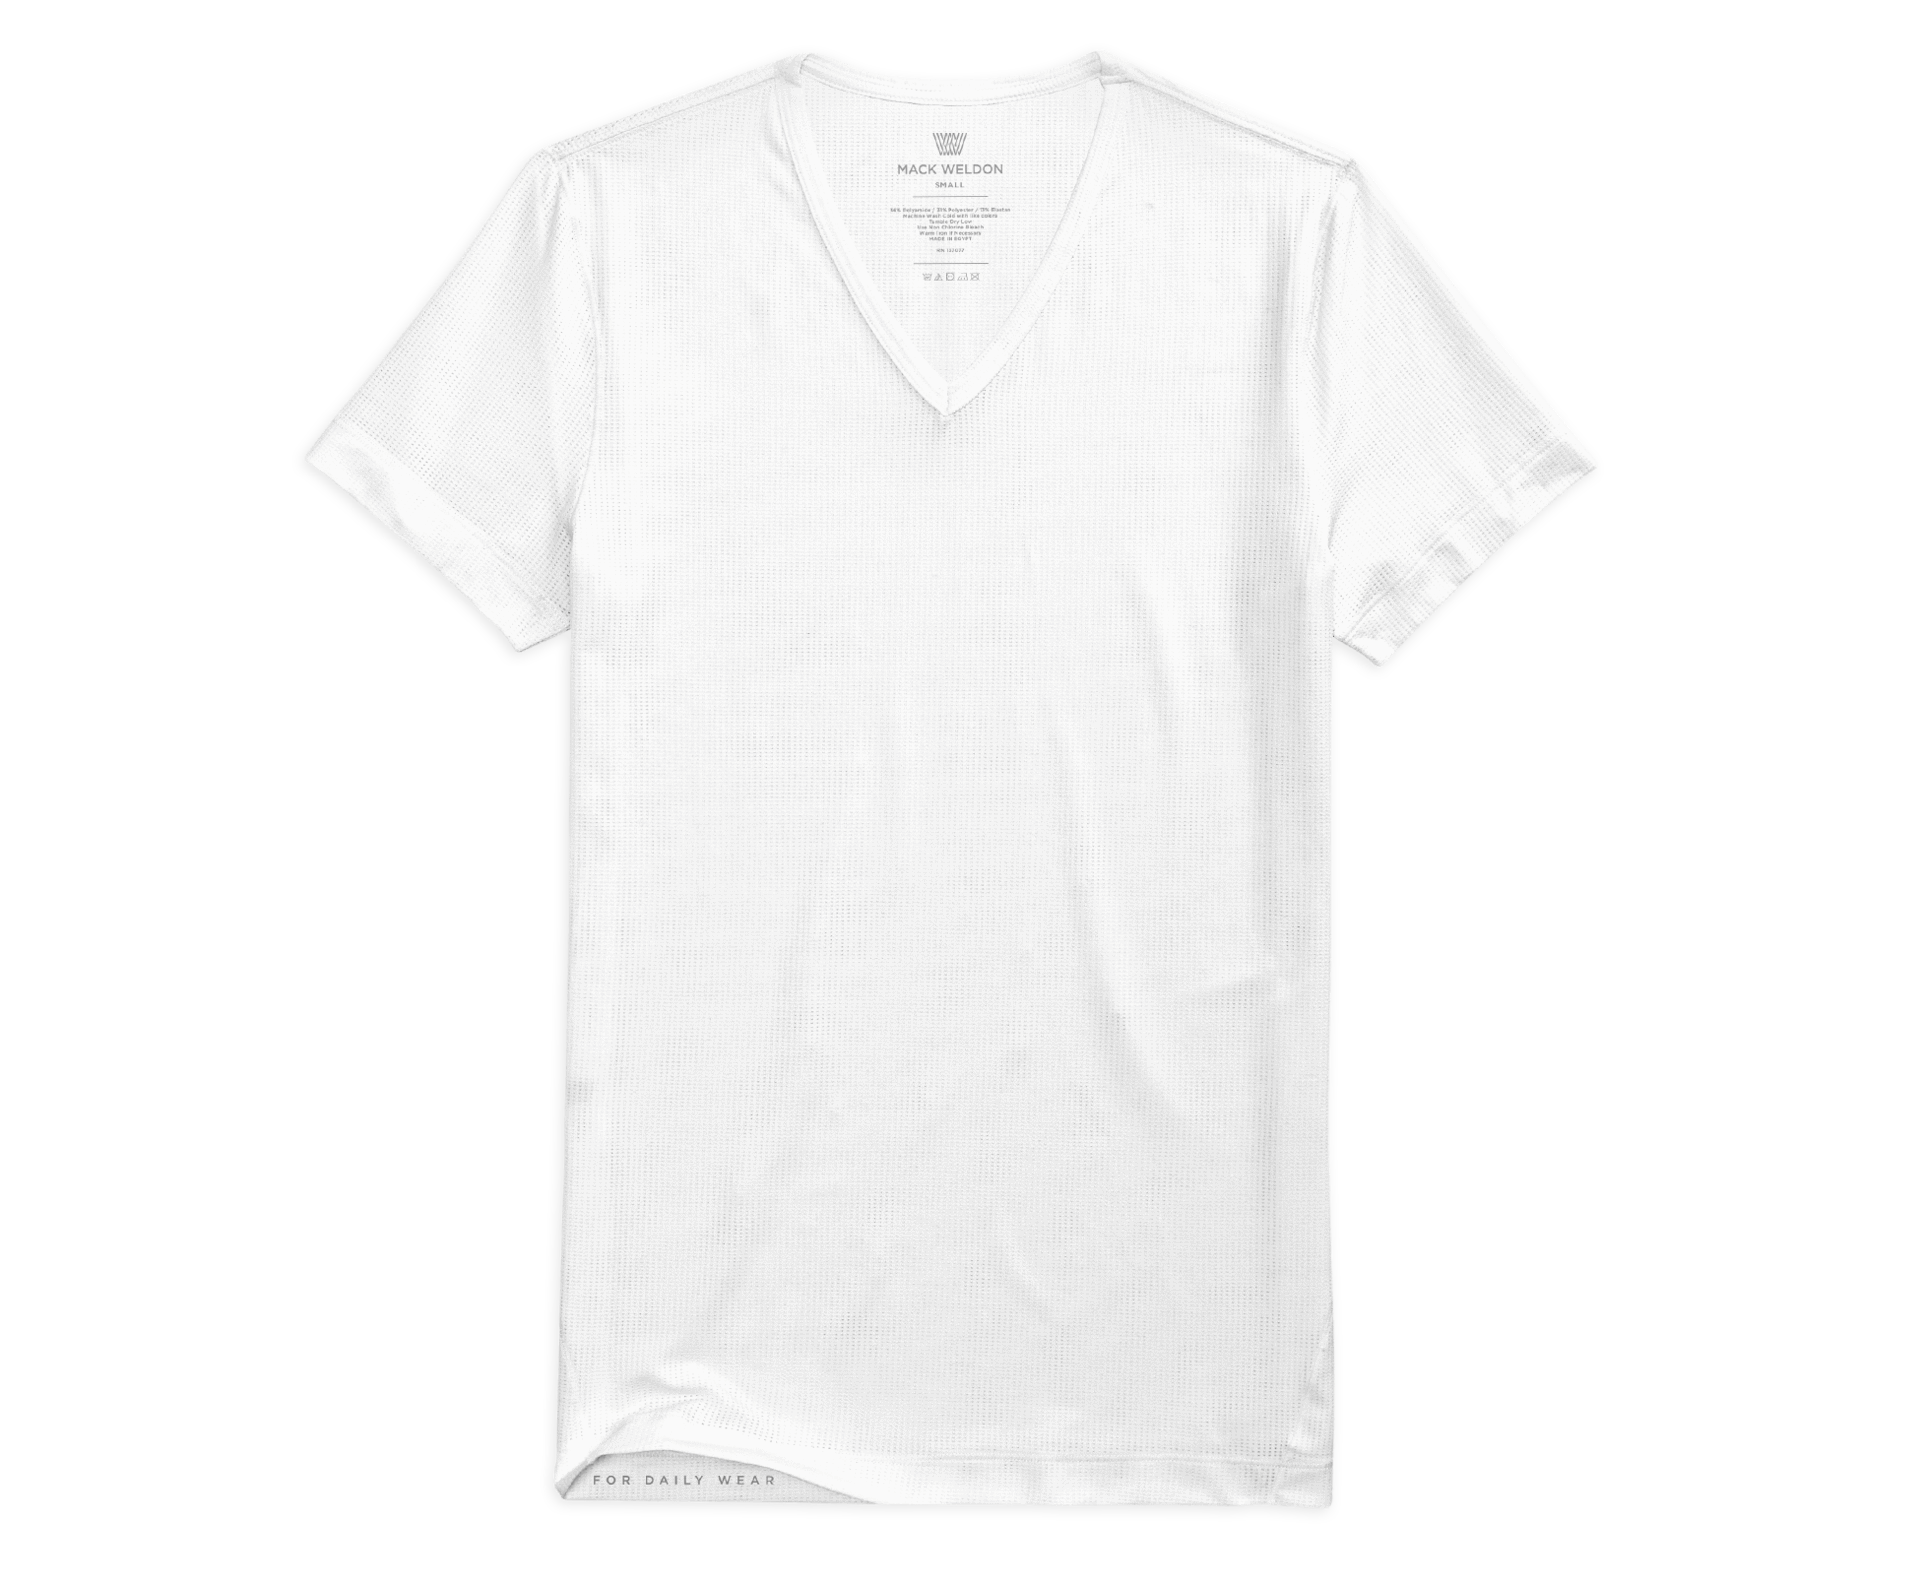 Mack Weldon AIRKNITx V-Neck Undershirt